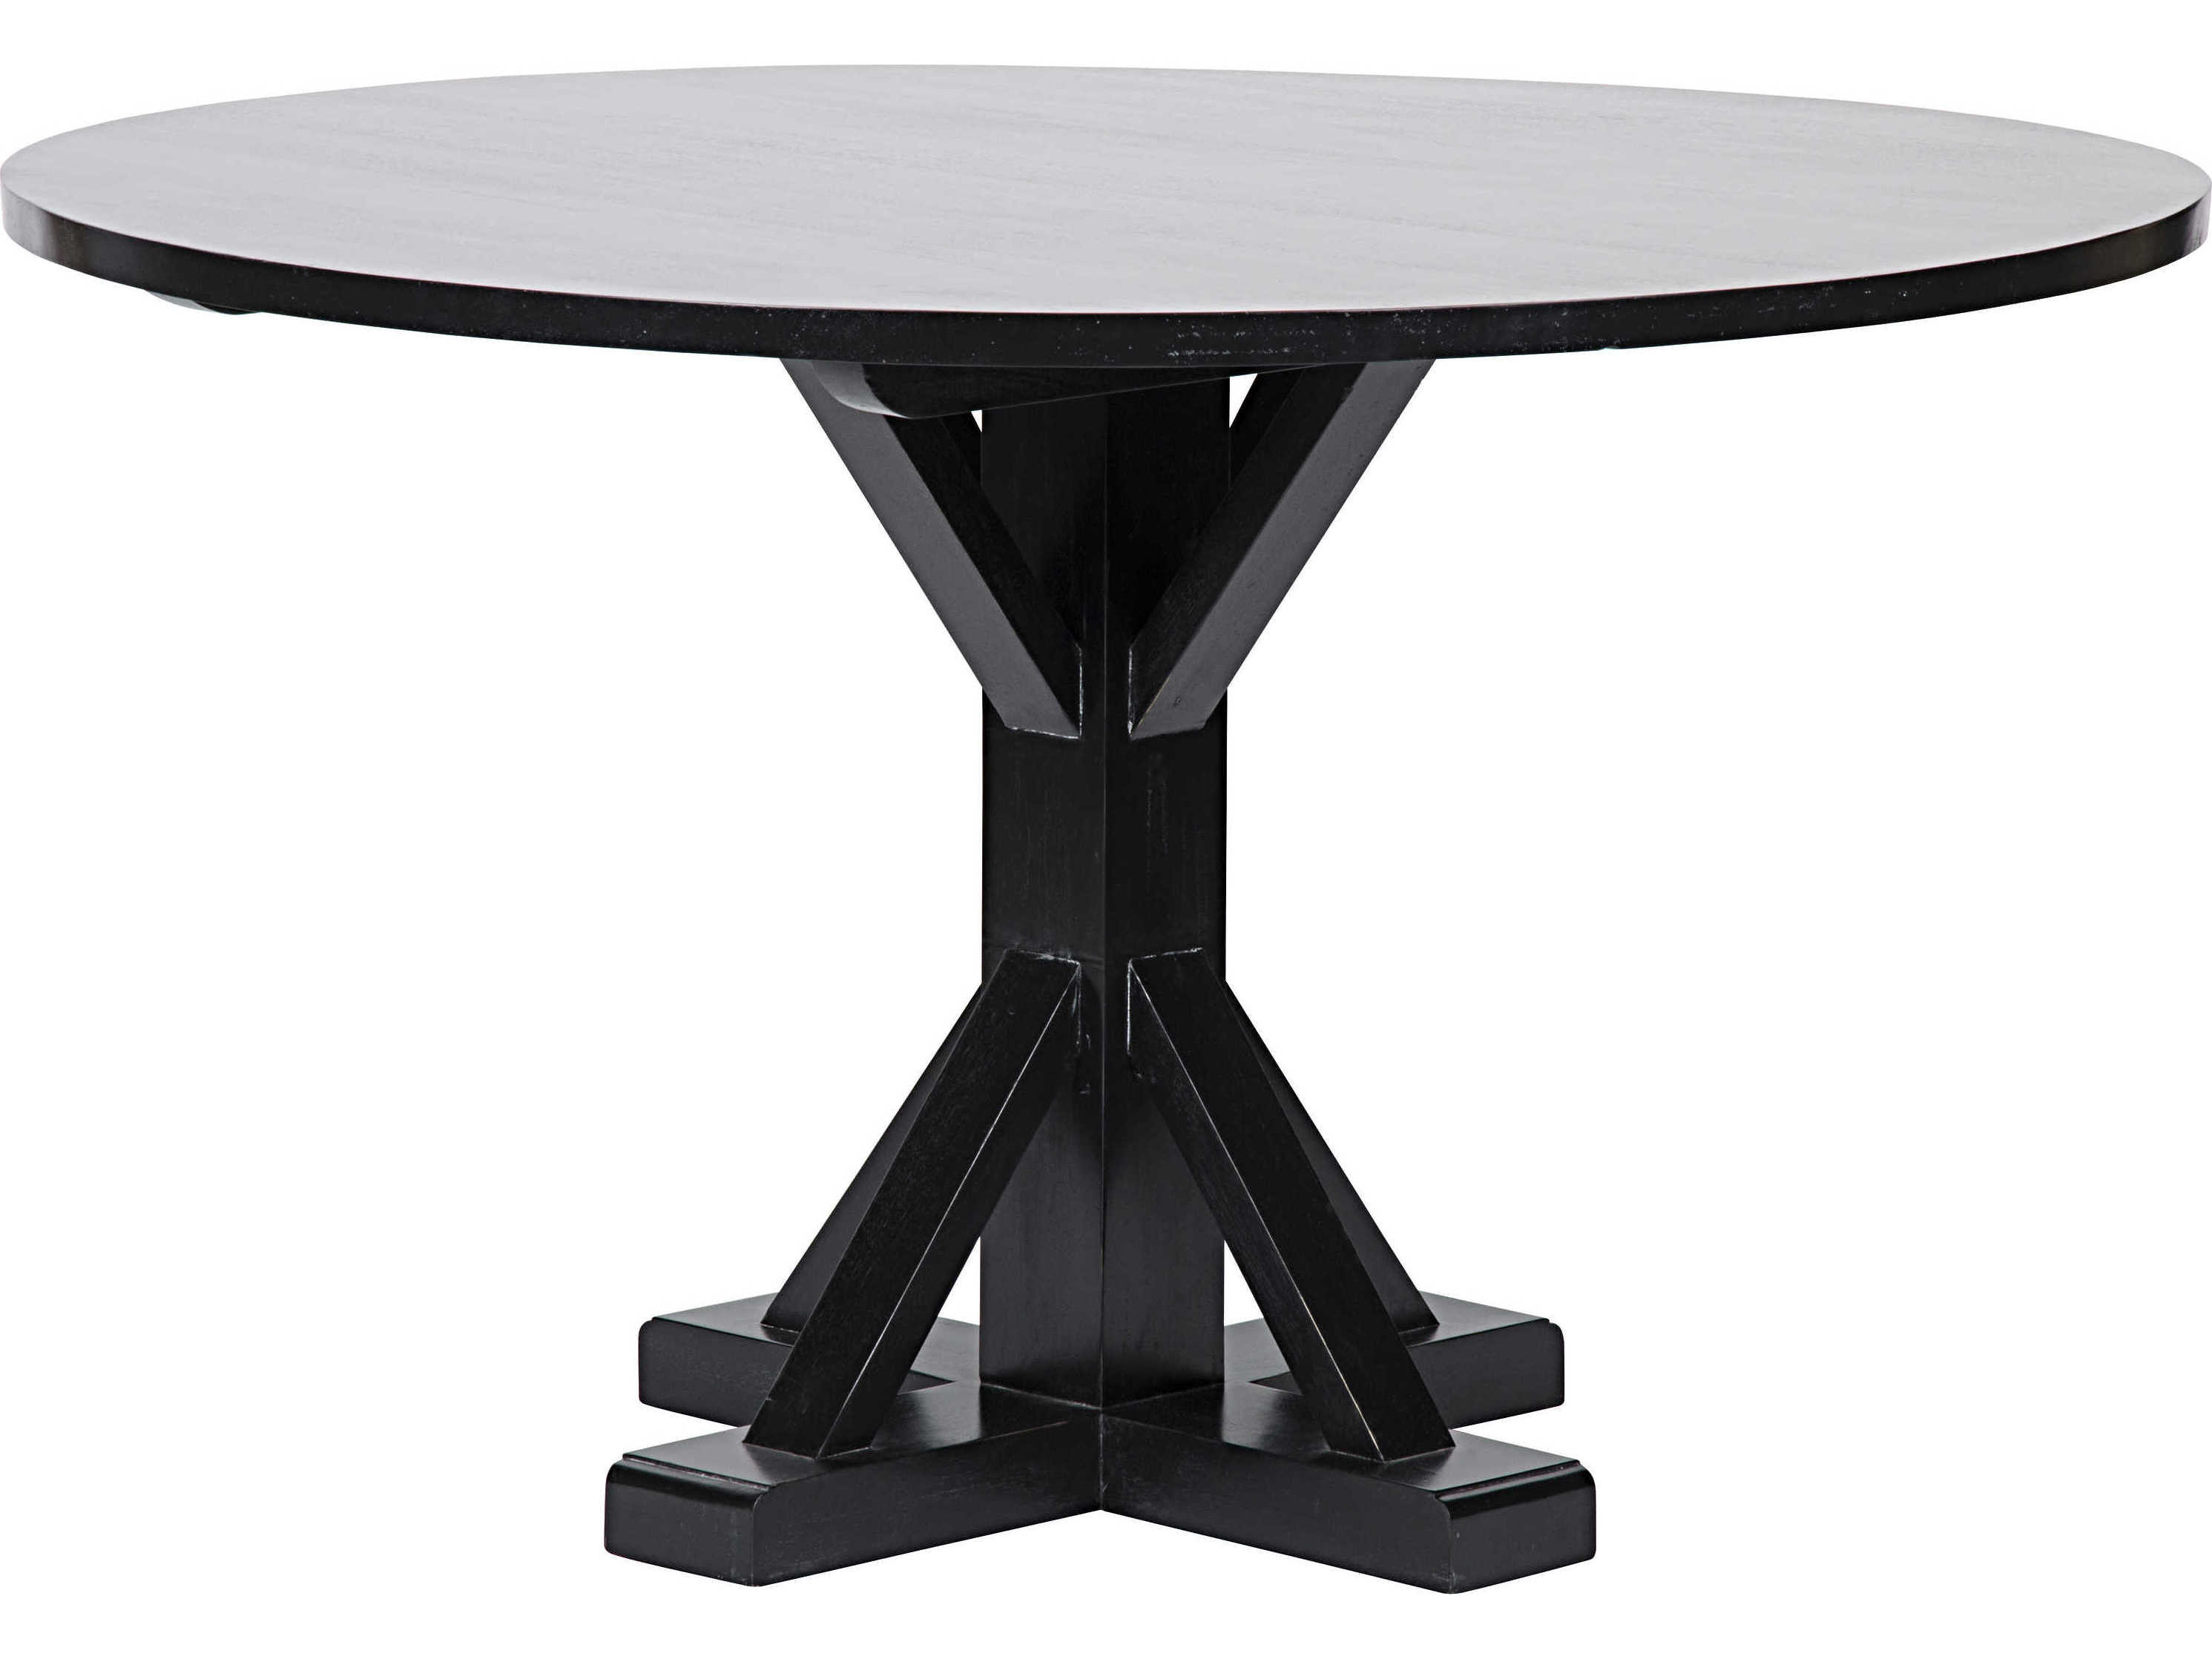 Noir Furniture Criss Cross Hand Rubbed Black 48 Round Dining Table Noigtab419hb48